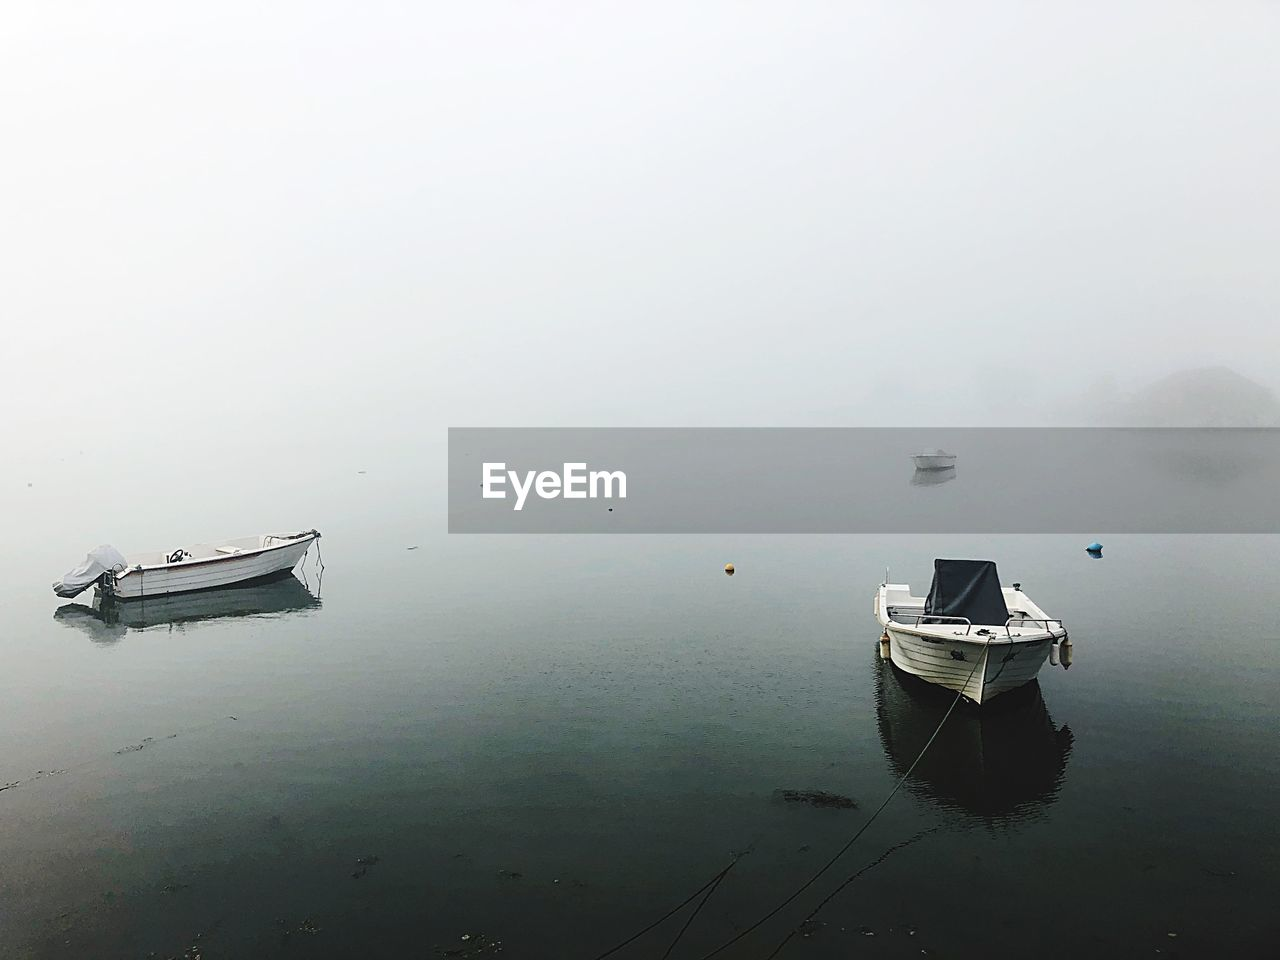 nautical vessel, water, fog, waterfront, tranquility, mode of transportation, scenics - nature, transportation, tranquil scene, moored, no people, reflection, nature, day, lake, beauty in nature, sky, outdoors, rowboat, anchored